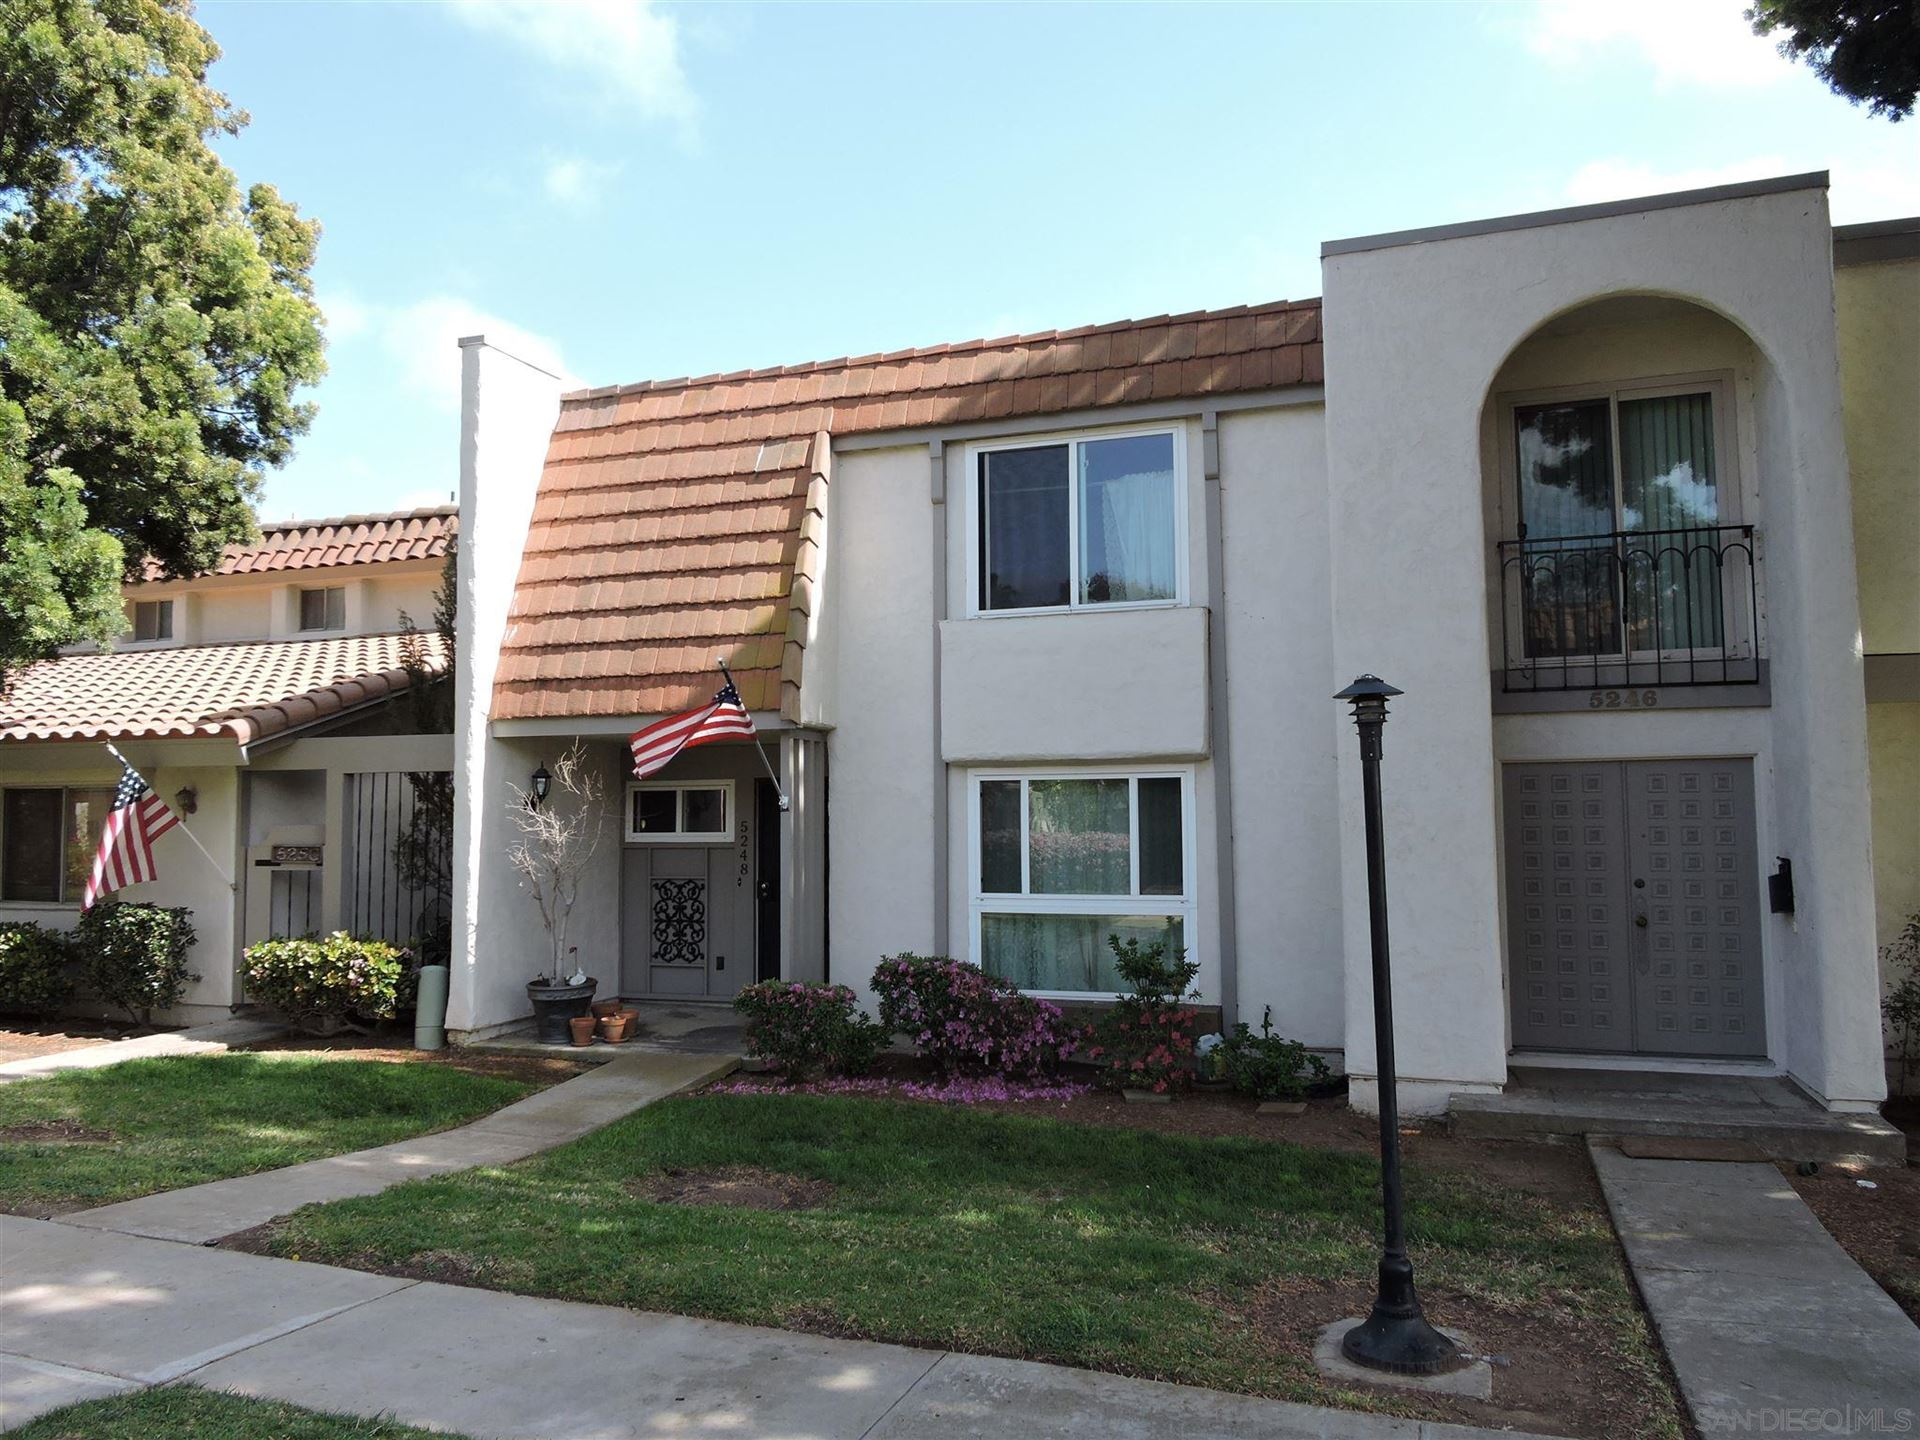 Photo of 5248 Mount Alifan Dr., San Diego, CA 92111 (MLS # 210009508)